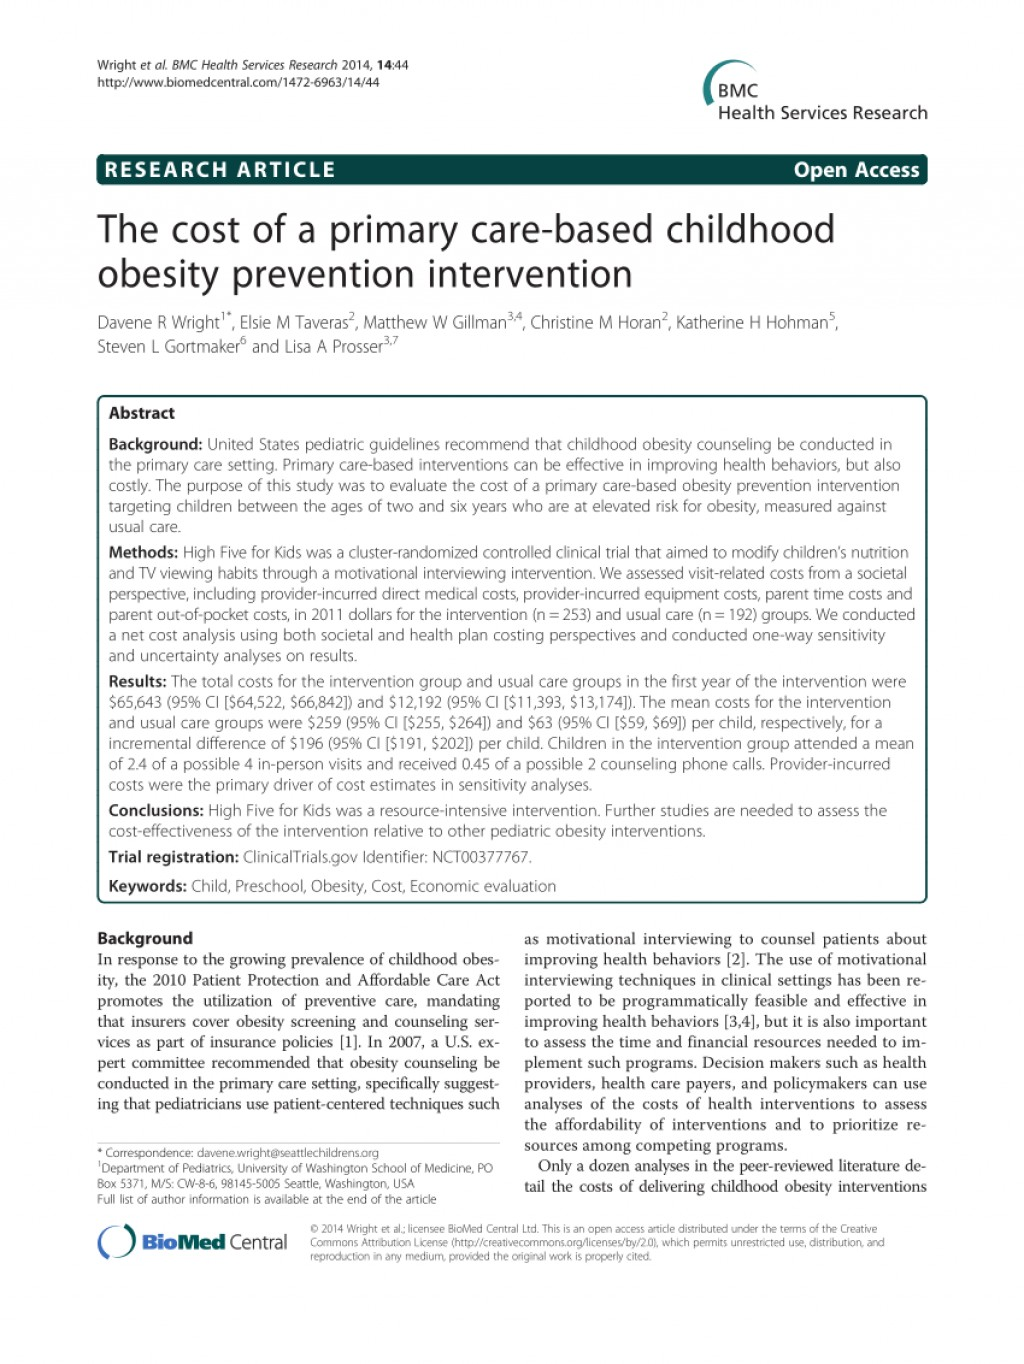 003 Primary Research Article On Childhood Obesity Paper Imposing Large